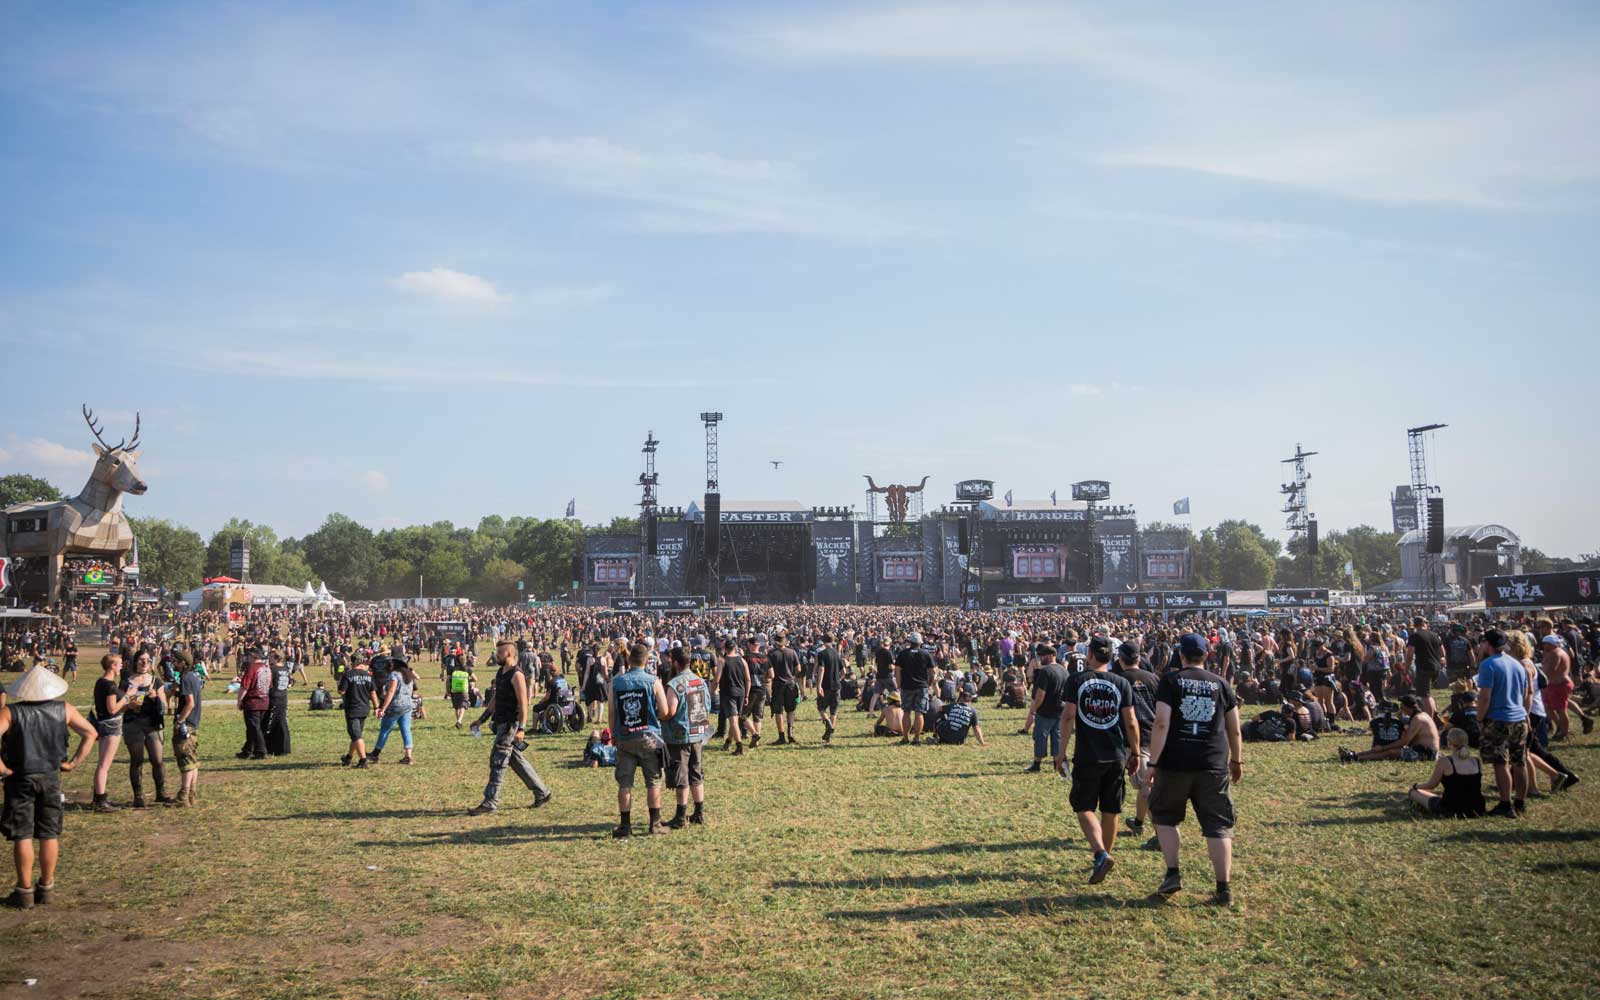 Wacken Open Air festival on August 2, 2018 in Wacken, Germany.